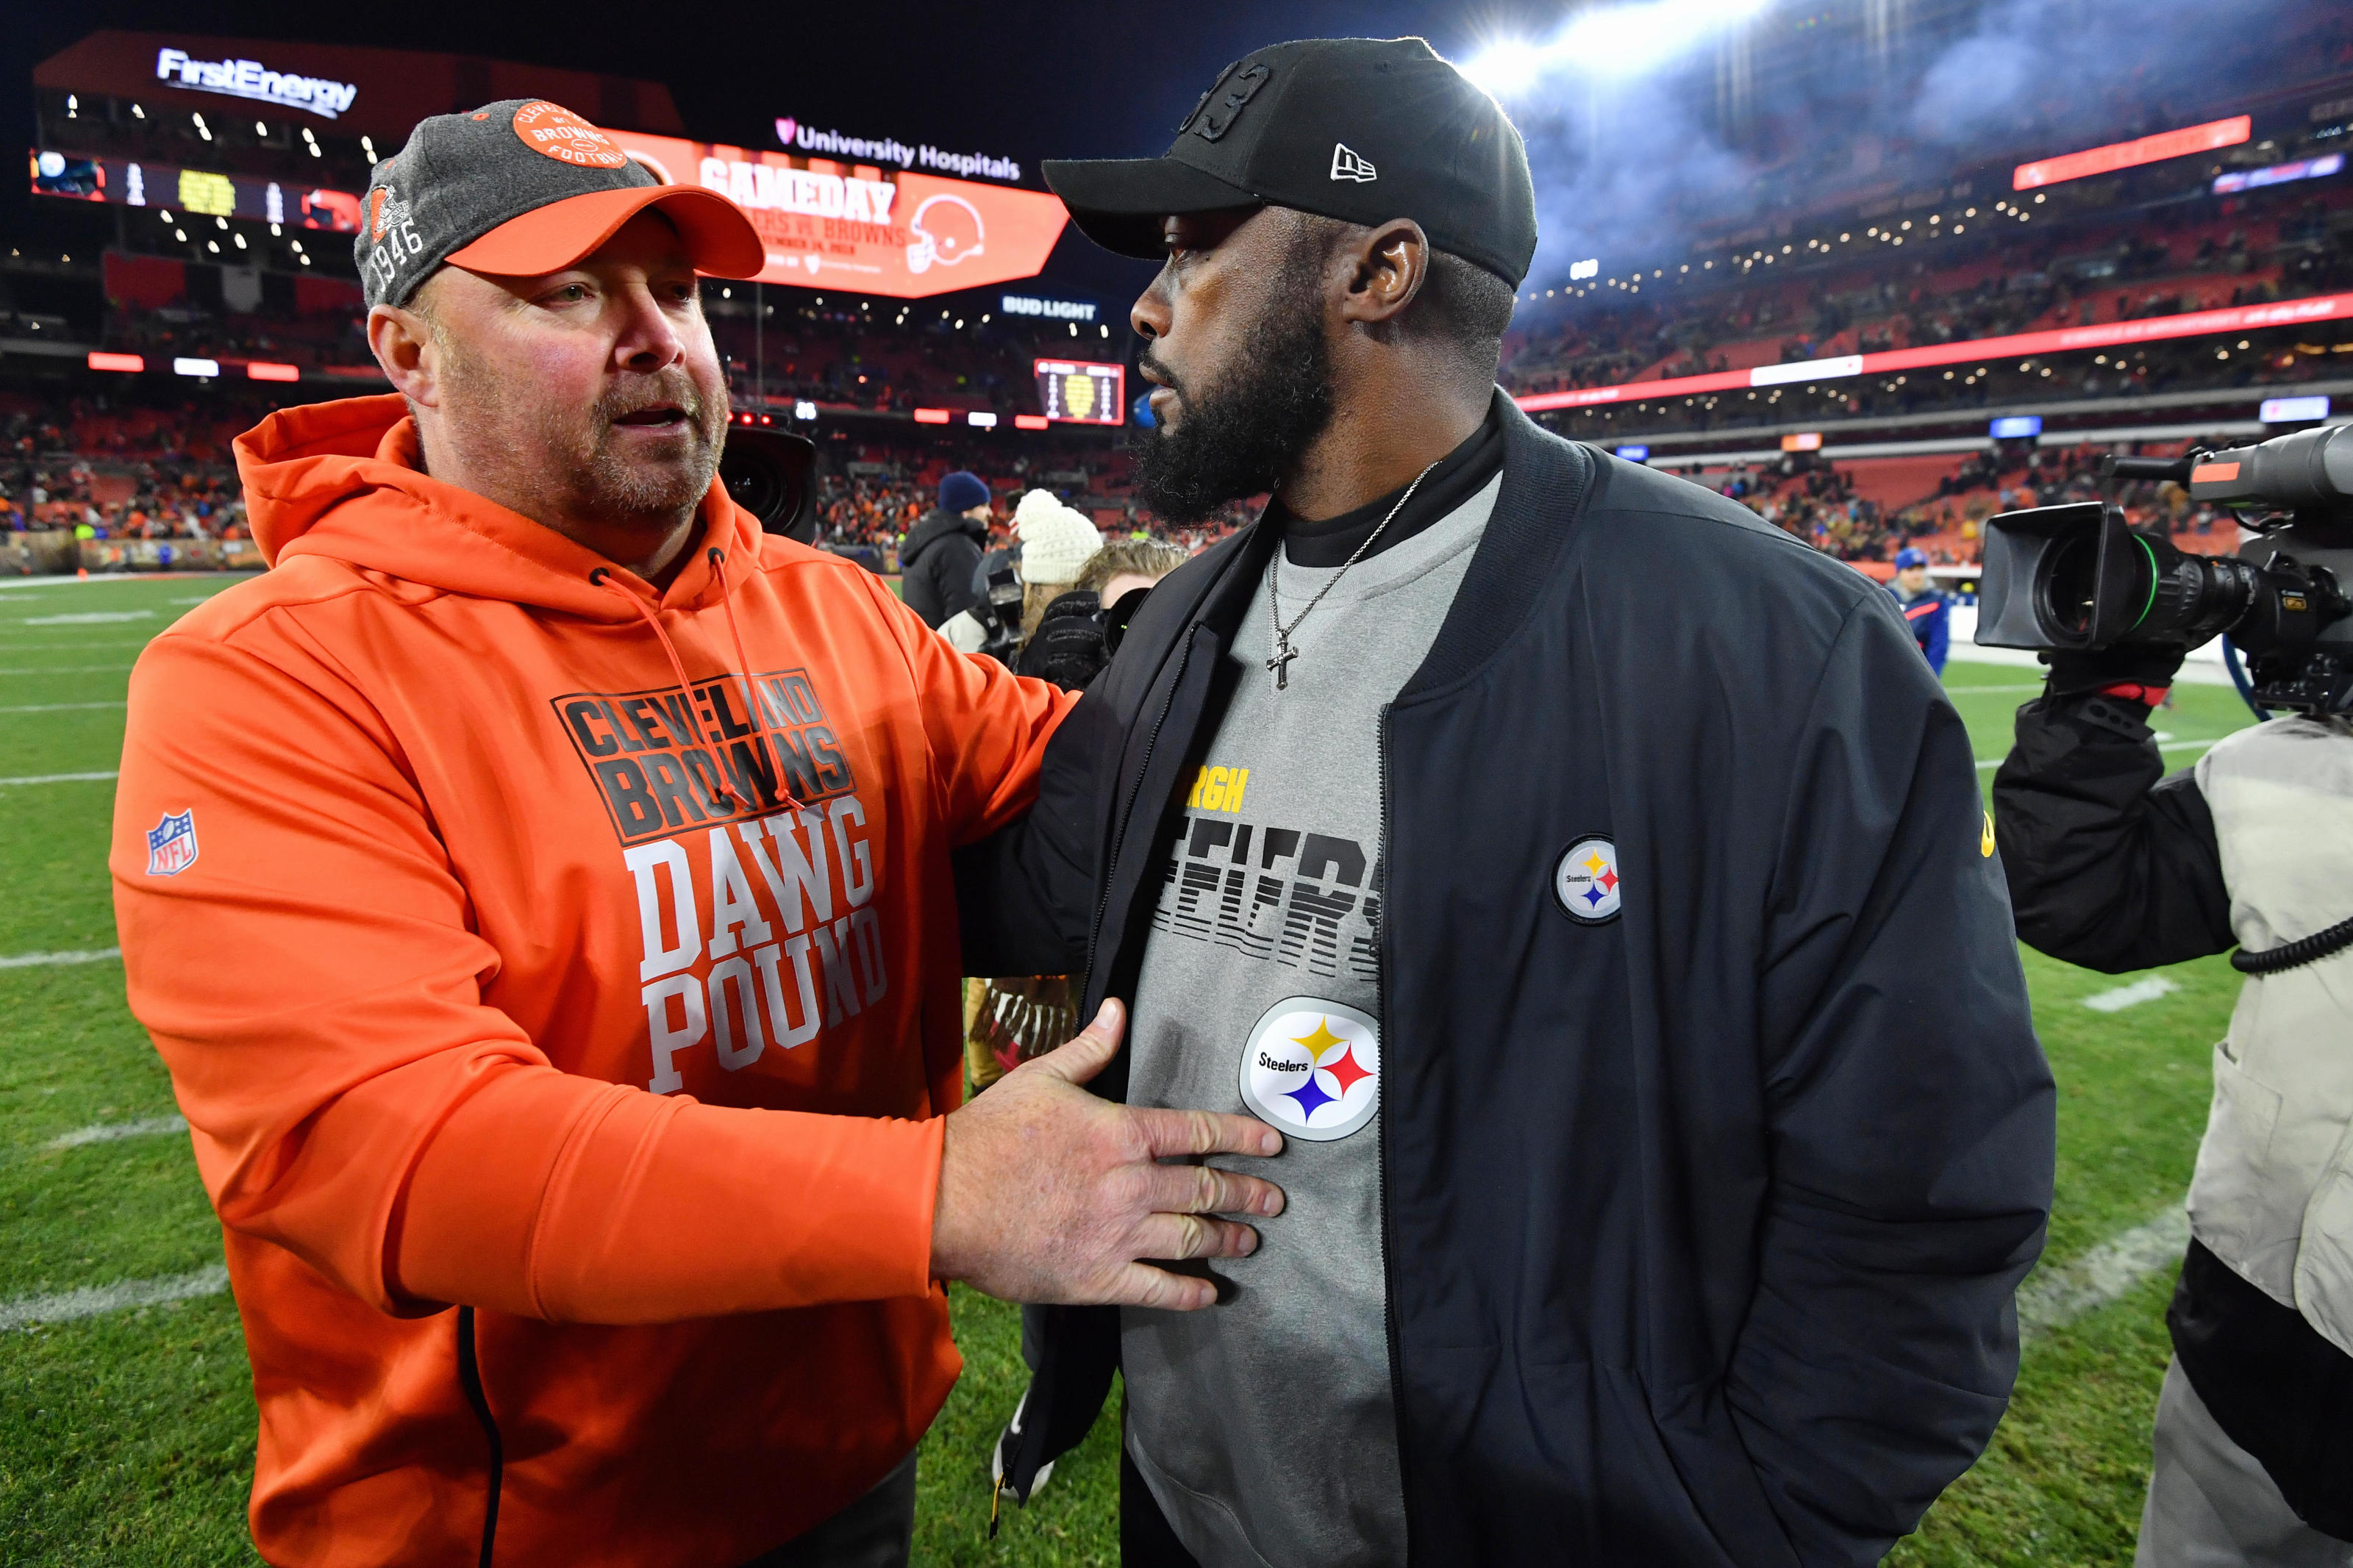 Mike Tomlin Not Sure His Team Did Anything Wrong In